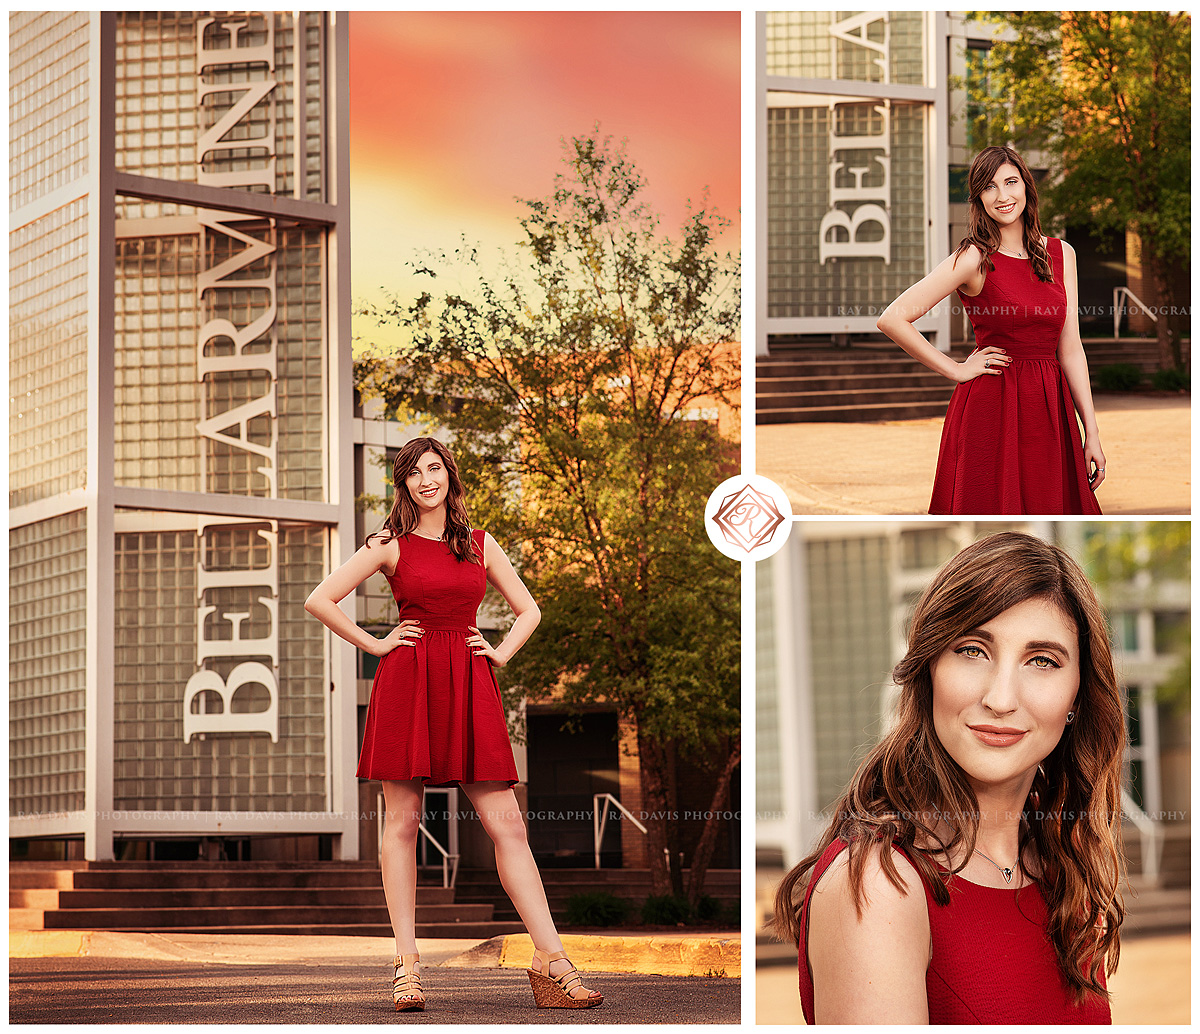 Bellarmine University campus with girl in red dress for Grad session pictures